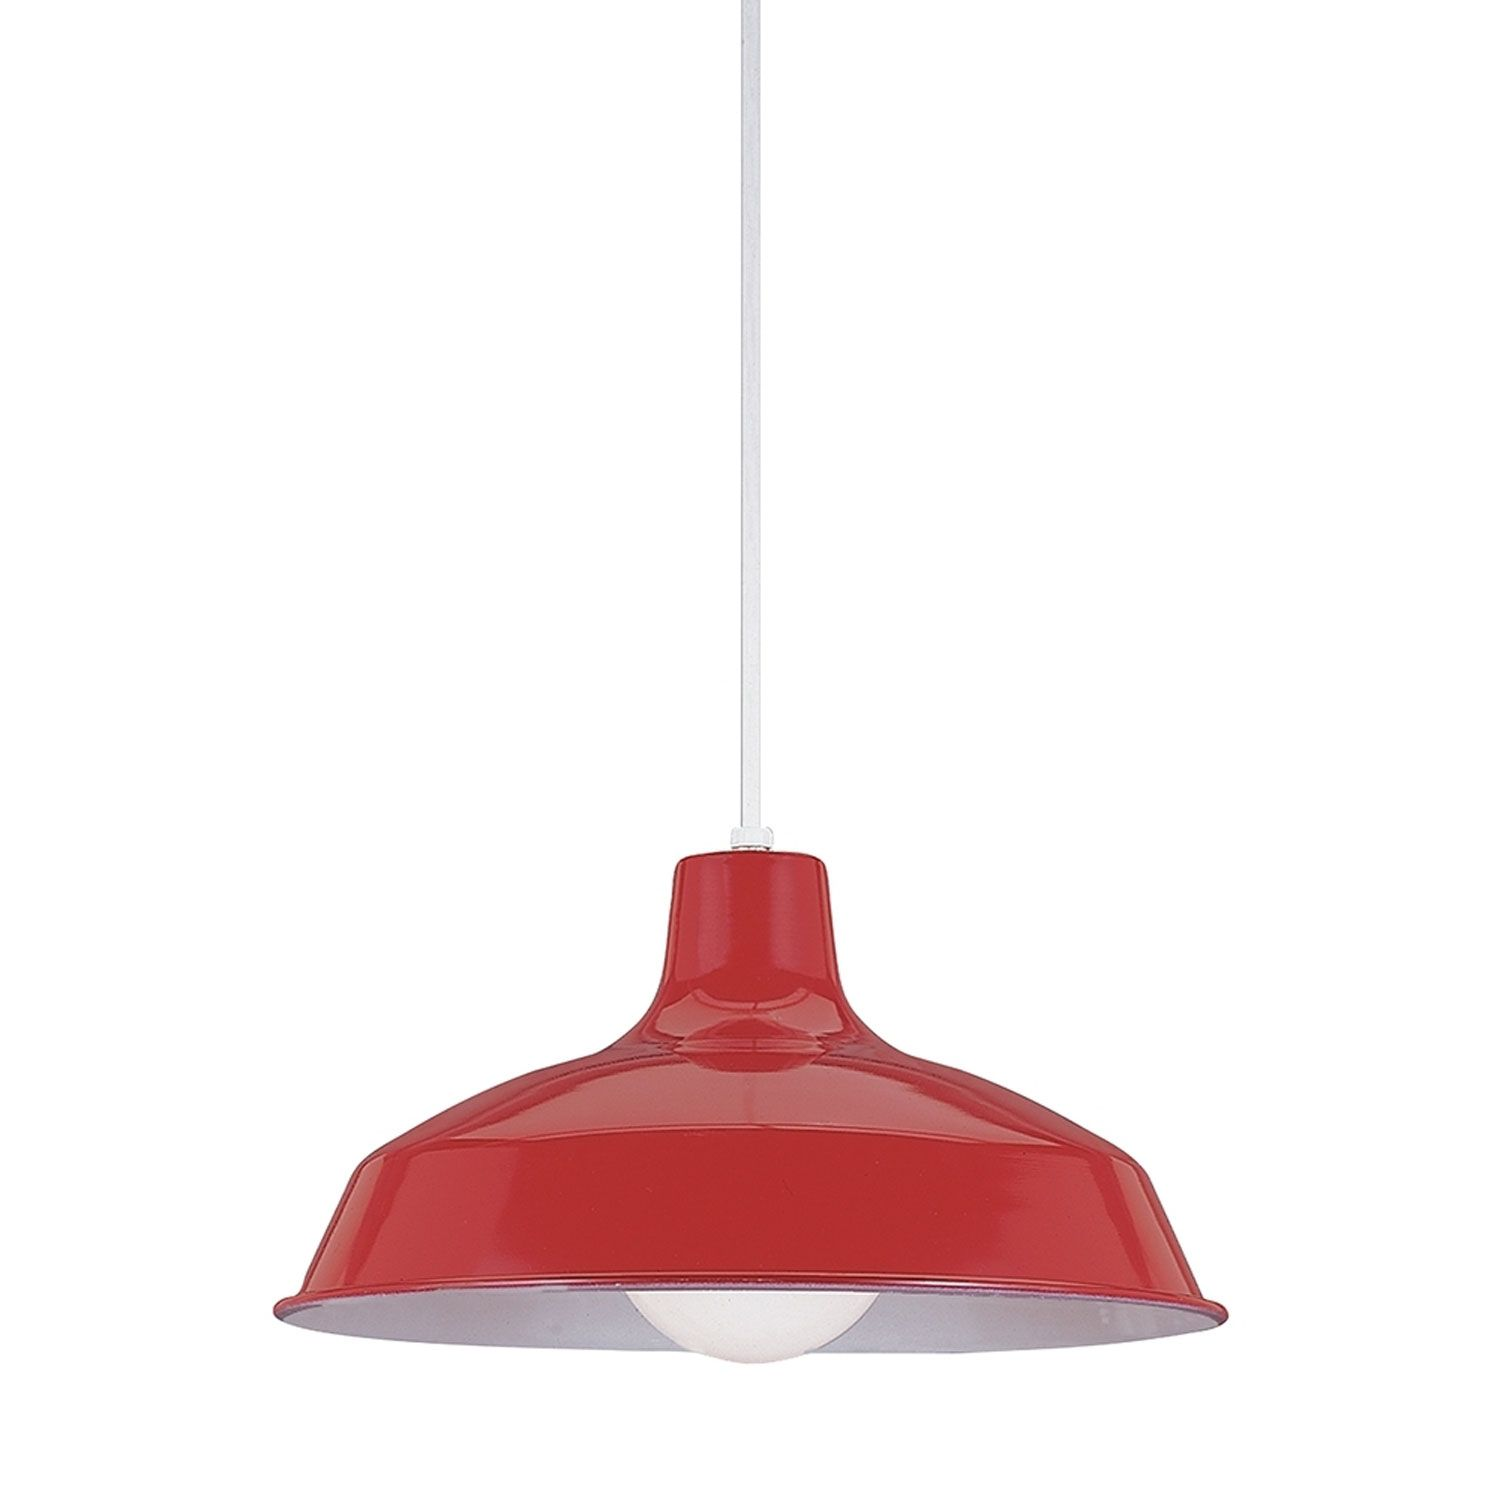 Sea Gull Lighting Red Dome Pendant On Sale